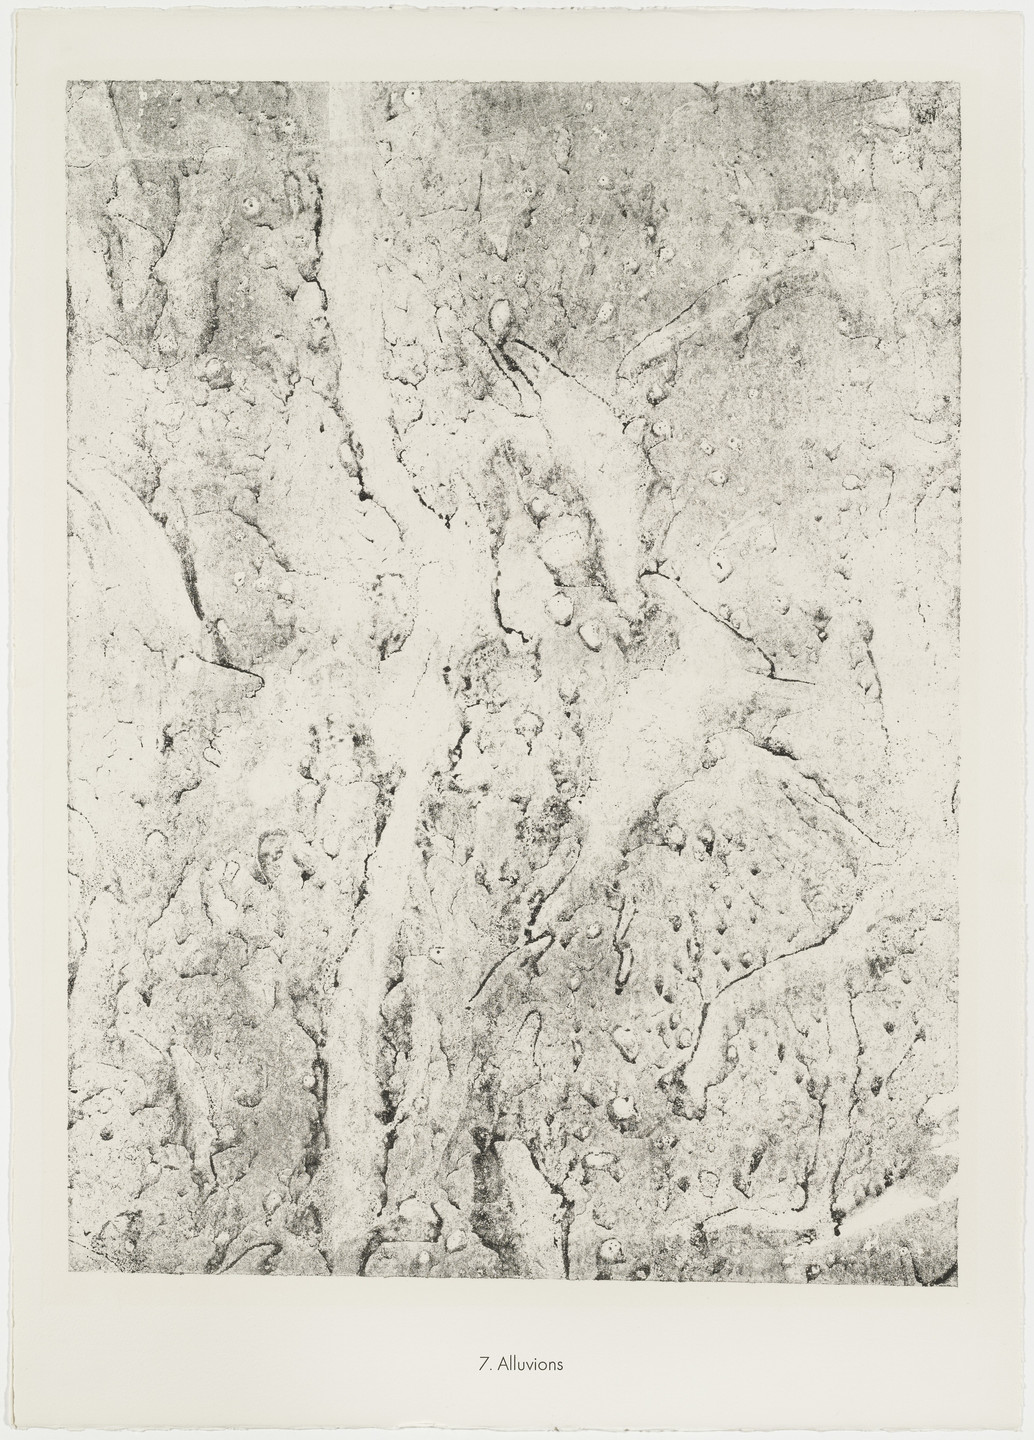 Jean Dubuffet. Alluvium (Alluvions) from the portfolio Soil, Earth (Sols, terres) from Phenomena (Les Phénomènes). 1959